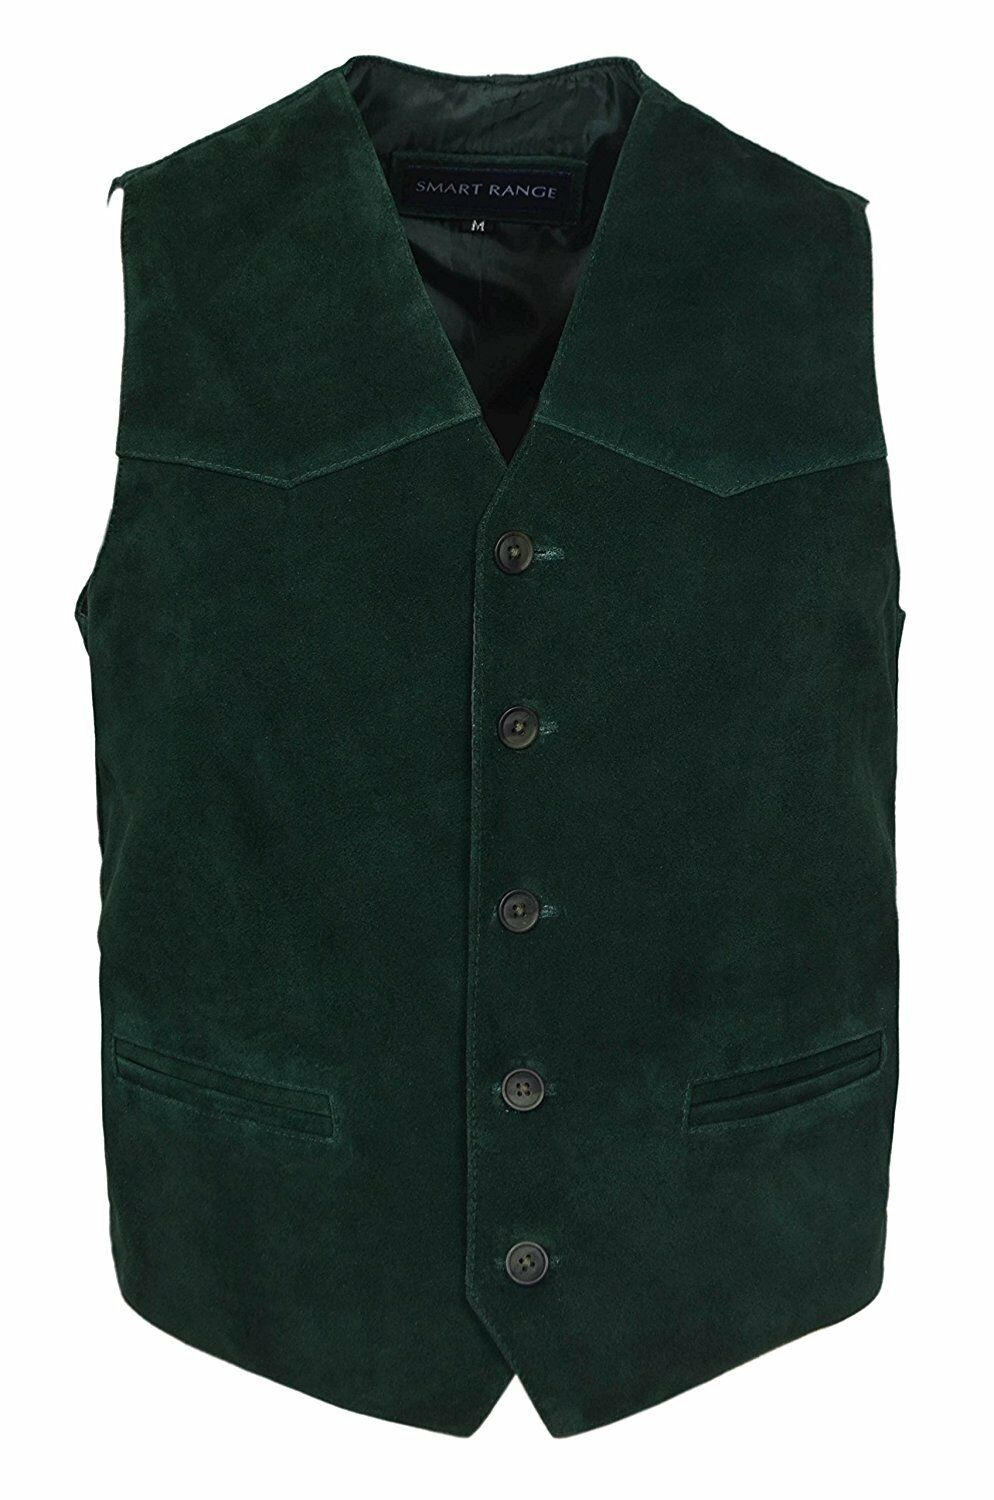 Men's Wayne New Party Fashion Stylish Green Real Soft Suede Leather Waistcoat